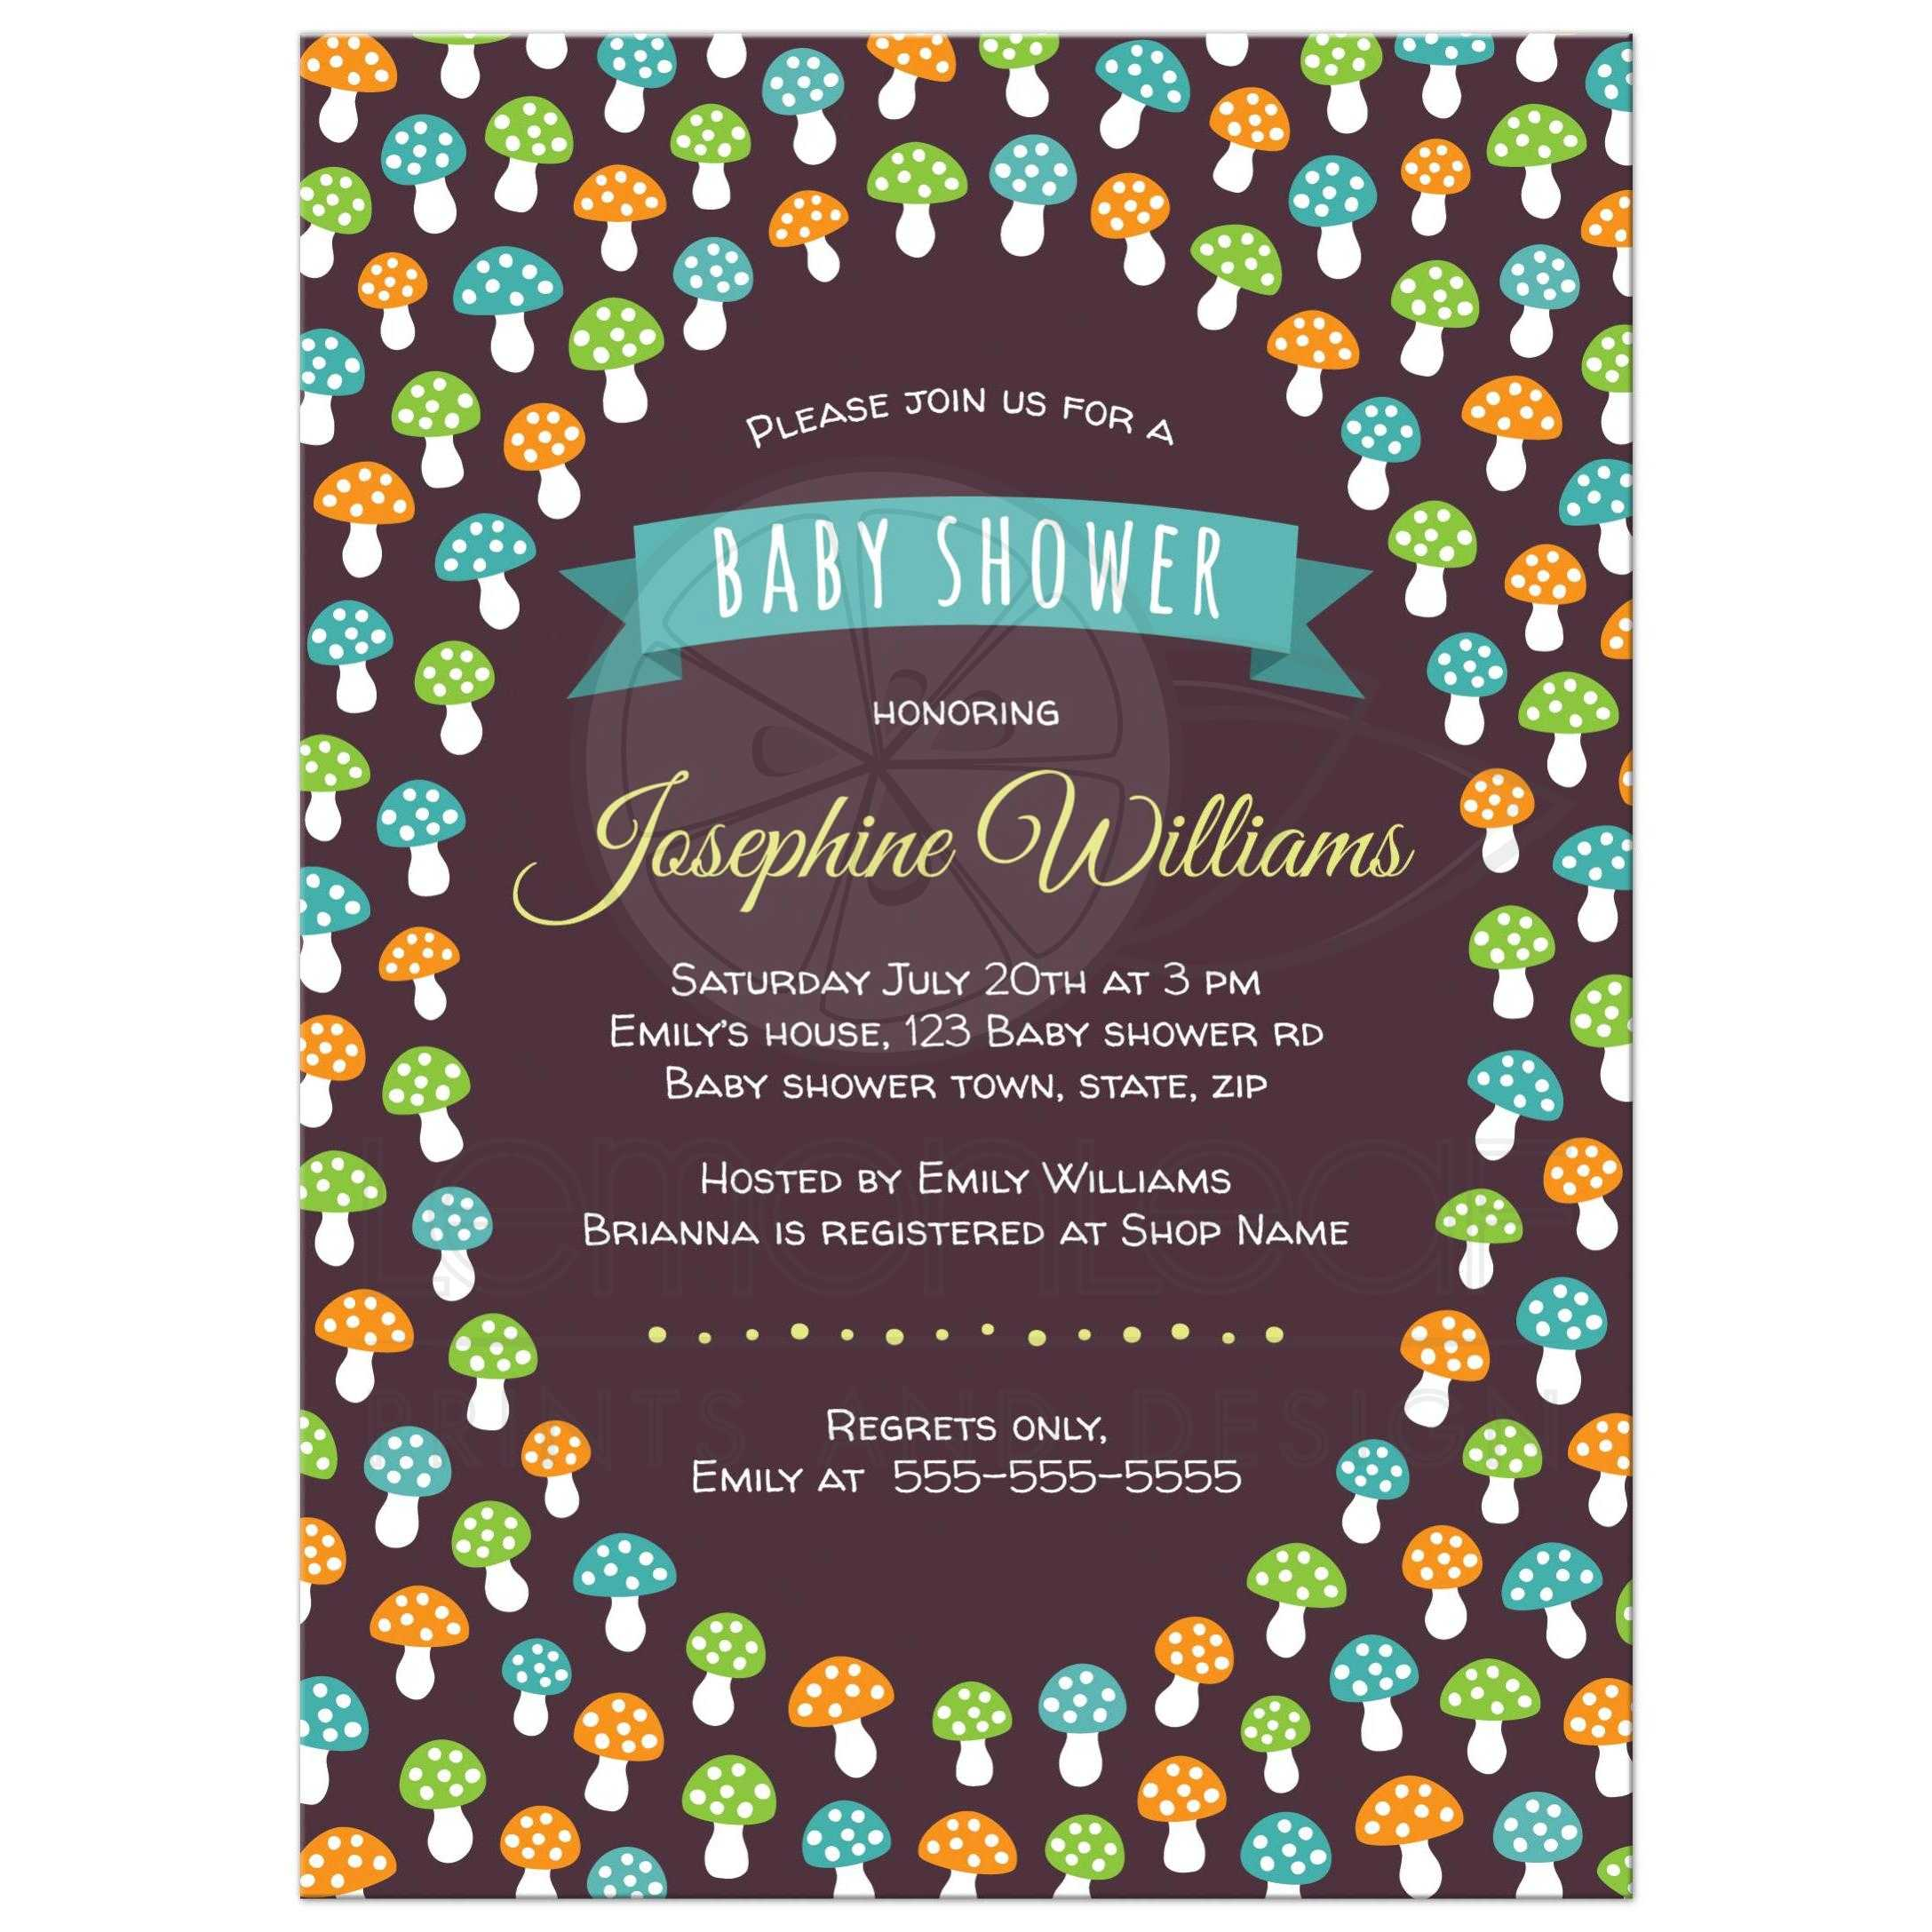 Cute Baby Shower Invitation With Green Orange And Blue Mushrooms